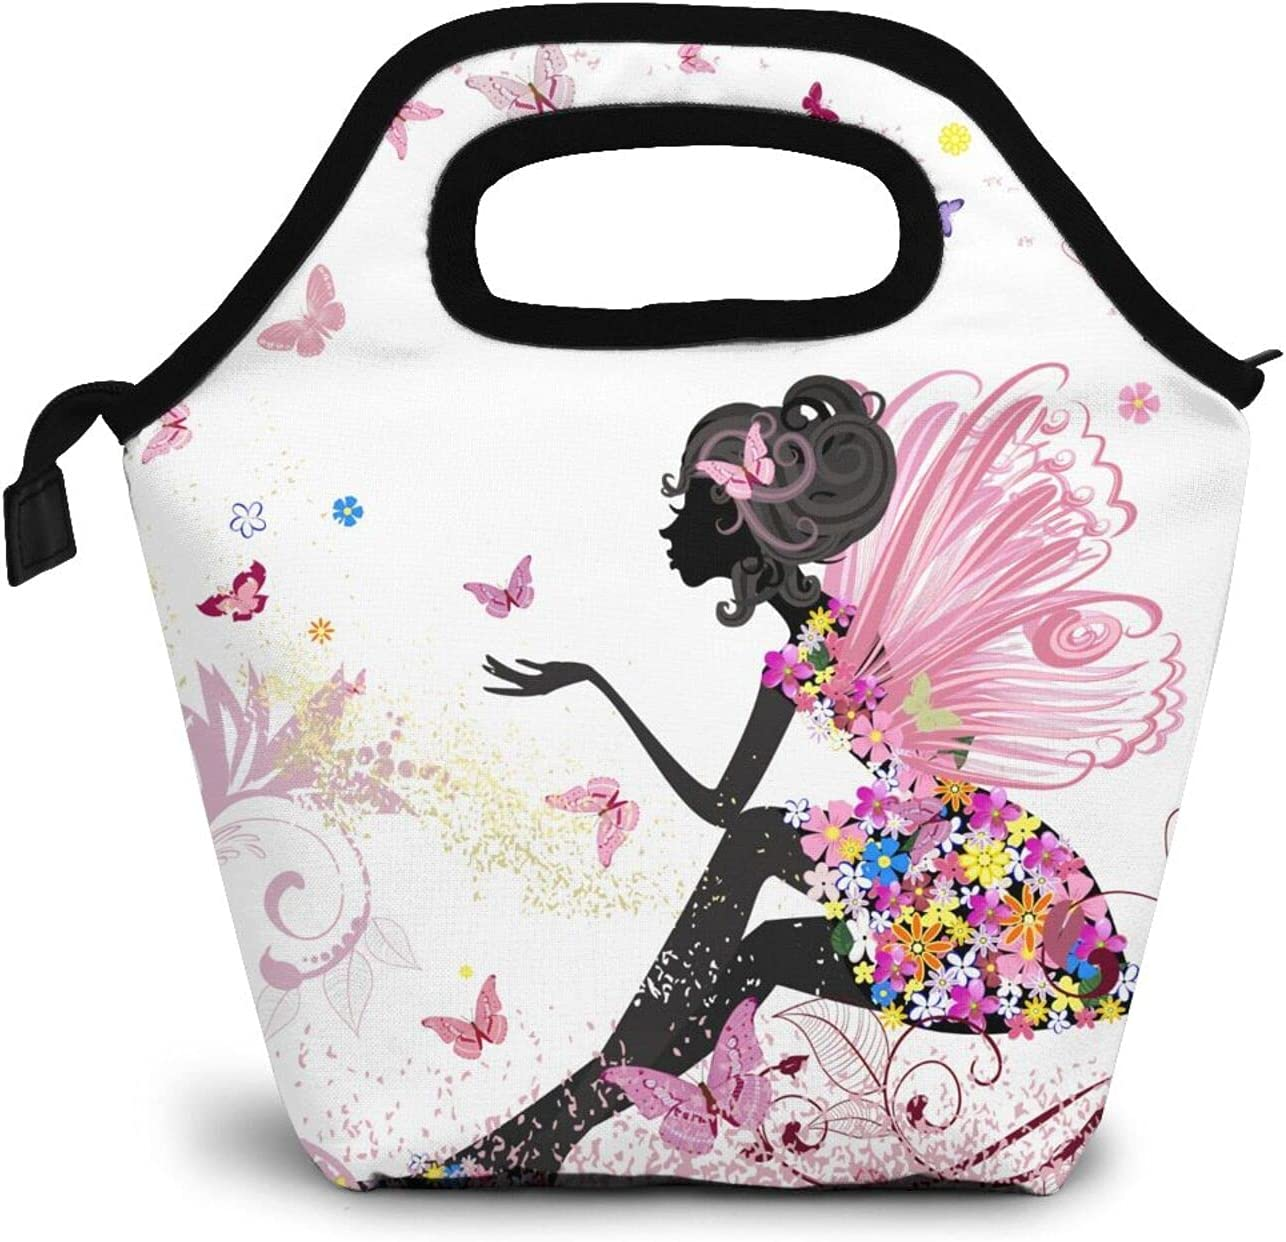 African American service Girl Lunch Ultra-Cheap Deals Bag Reusable Tote Thermal Insulated